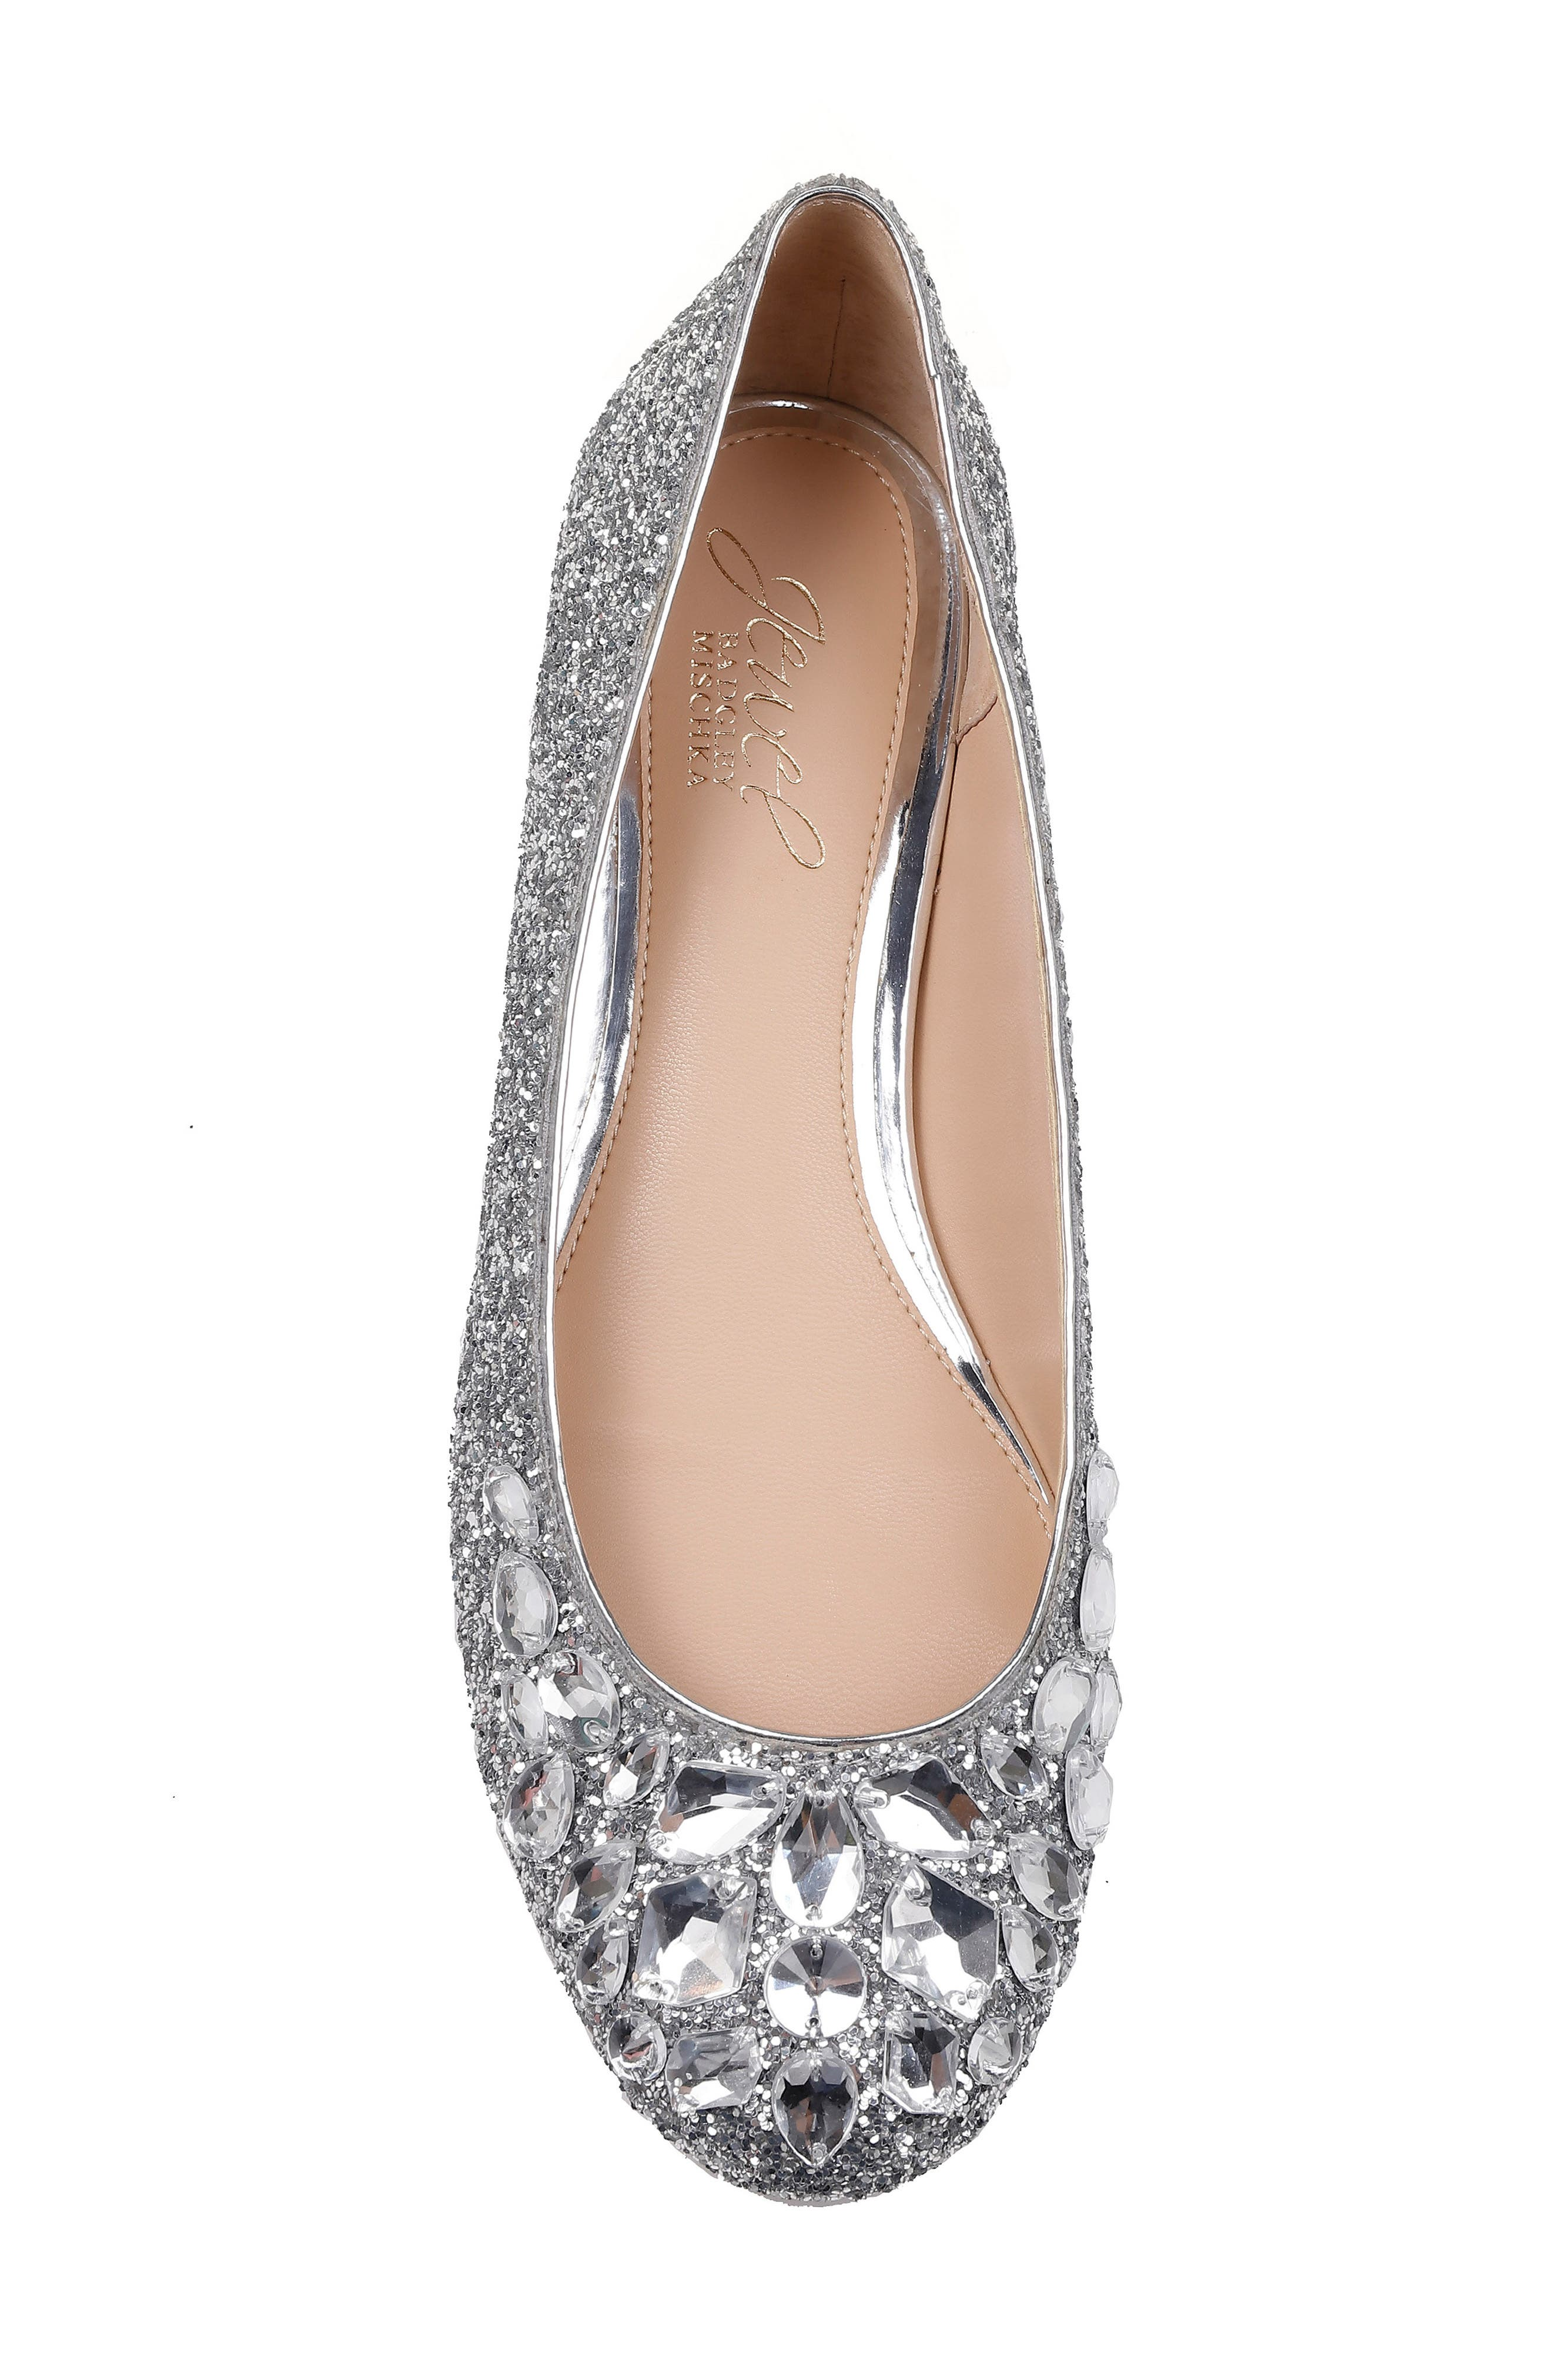 JEWEL BADGLEY MISCHKA, Mathilda Embellished Ballet Flat, Alternate thumbnail 5, color, SILVER GLITTER